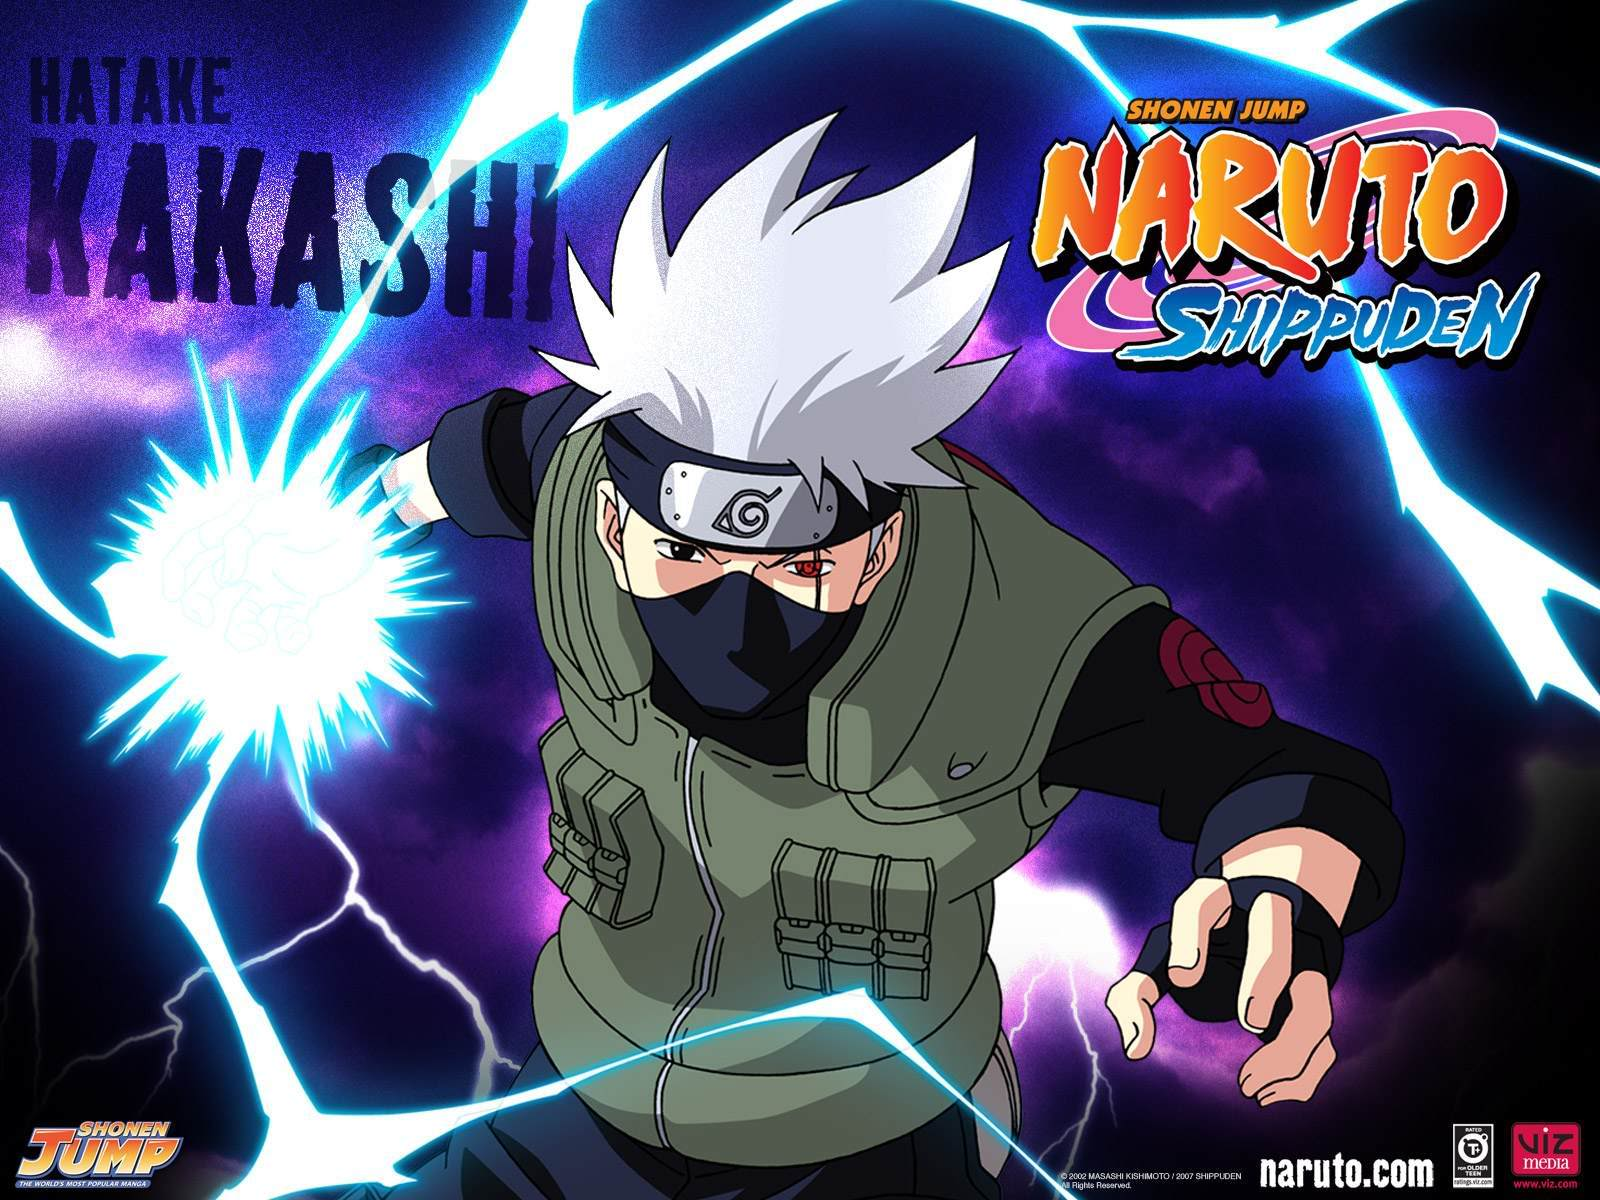 free download wallpaper naruto shippuden 3d - Naruto Shippuden Wallpapers Naruto Shippuden